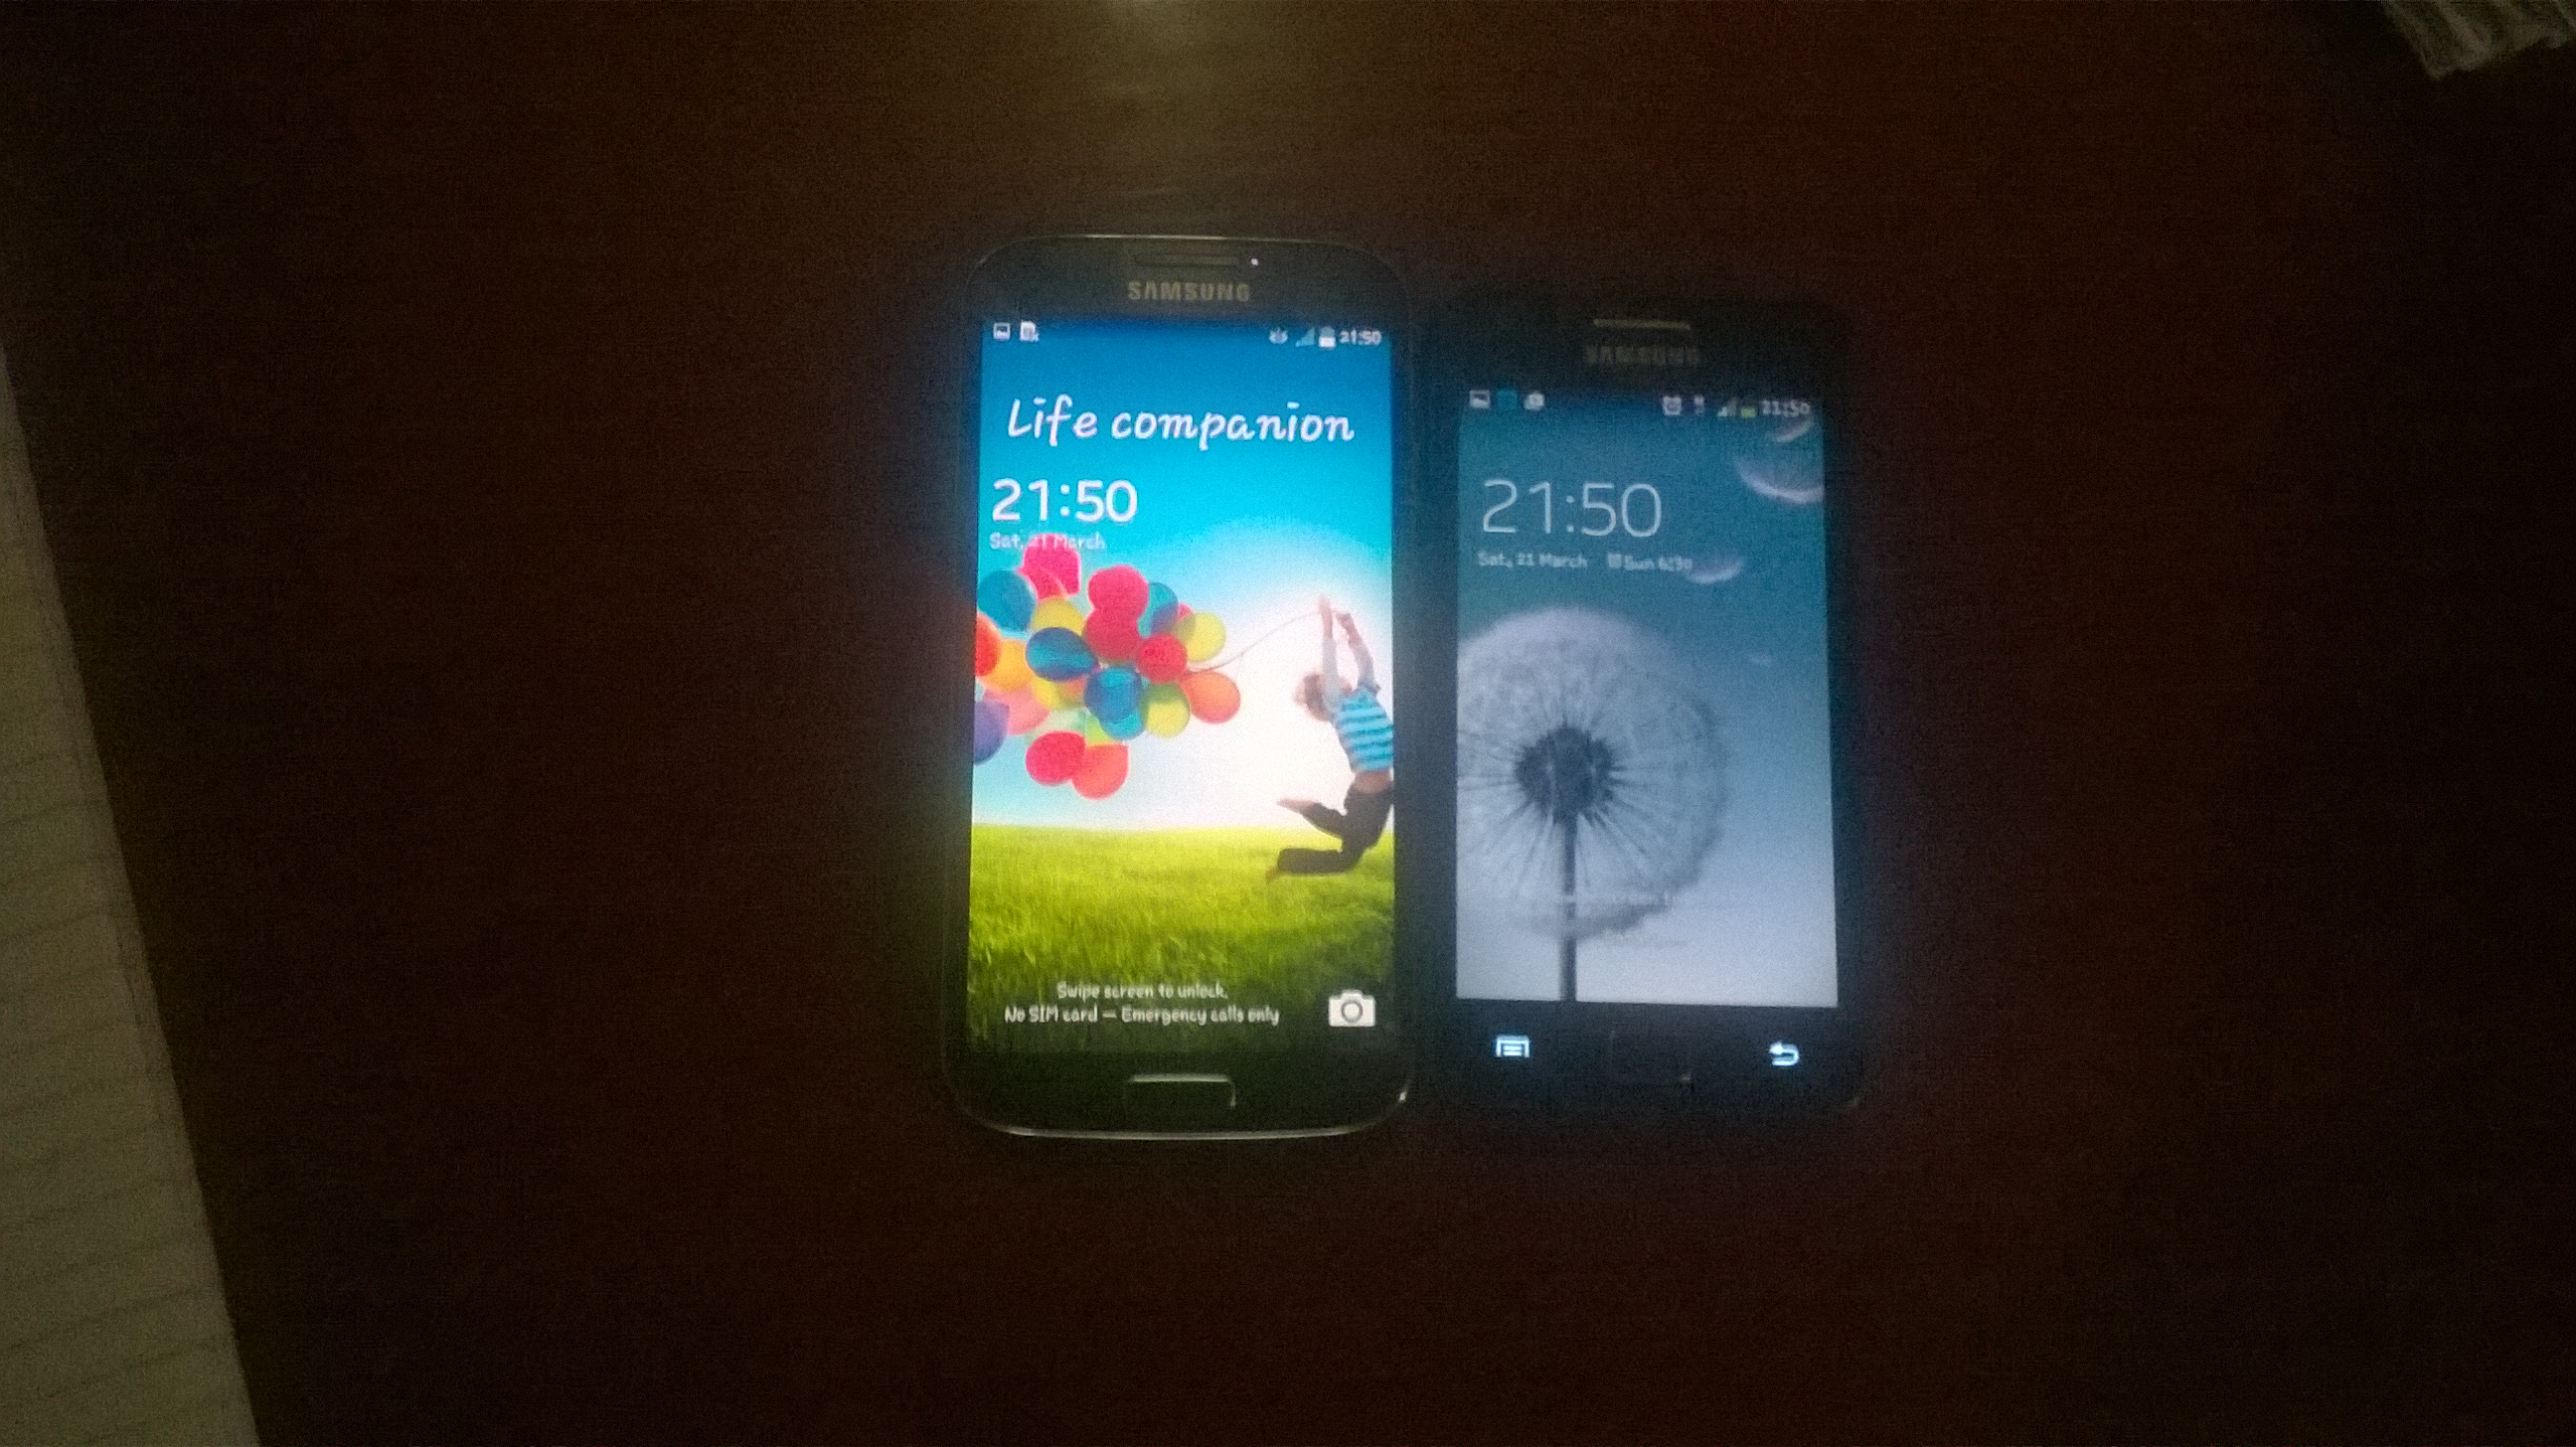 Samsung Galxy S II Plus with Samsung Galxy S4